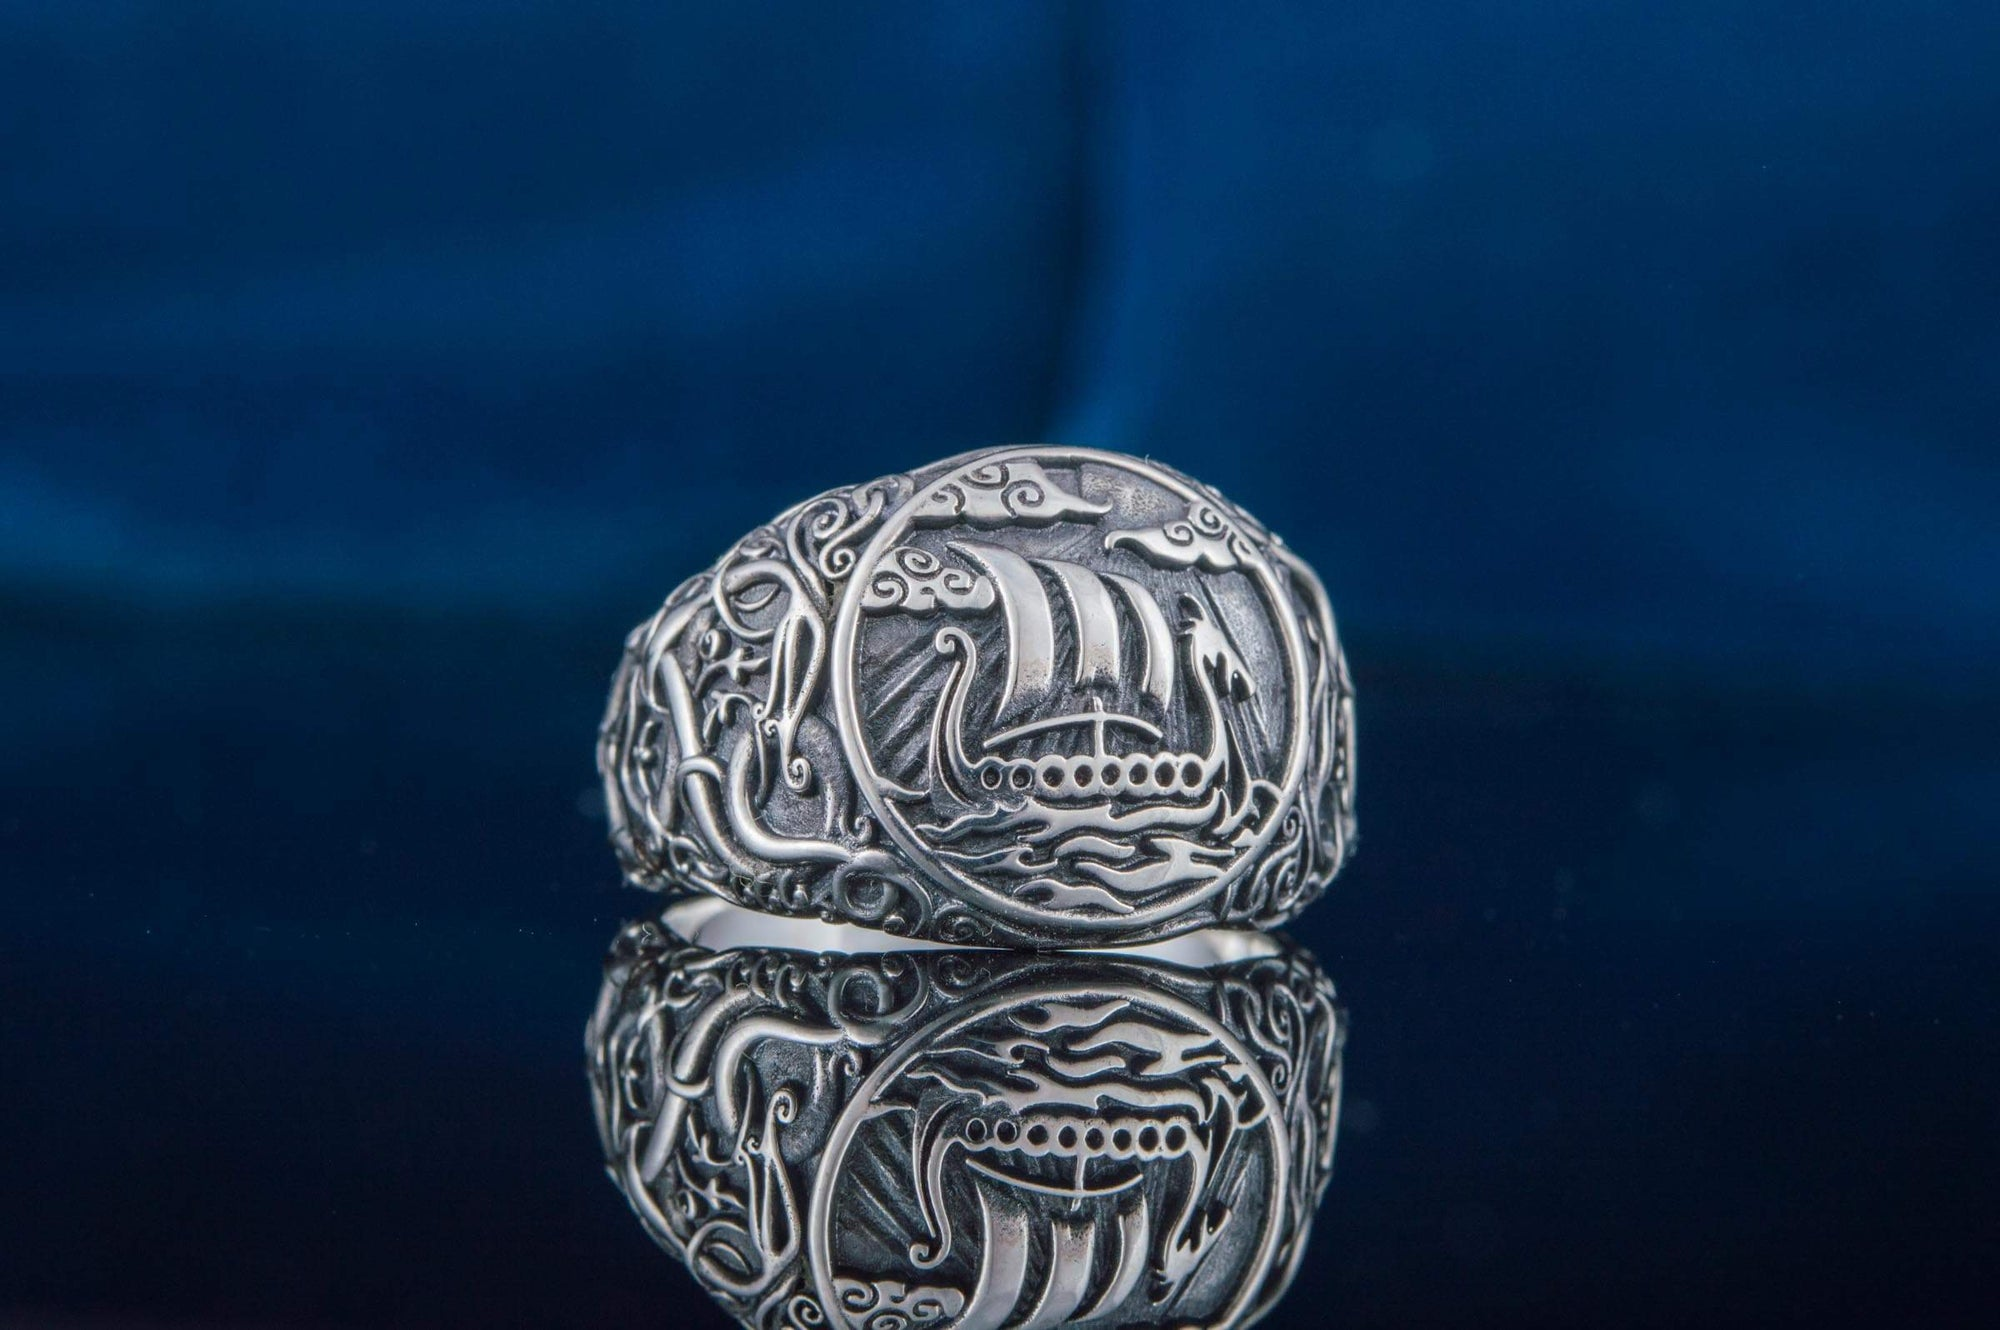 Sterling Silver Ring with Drakkar and Urnes Symbol